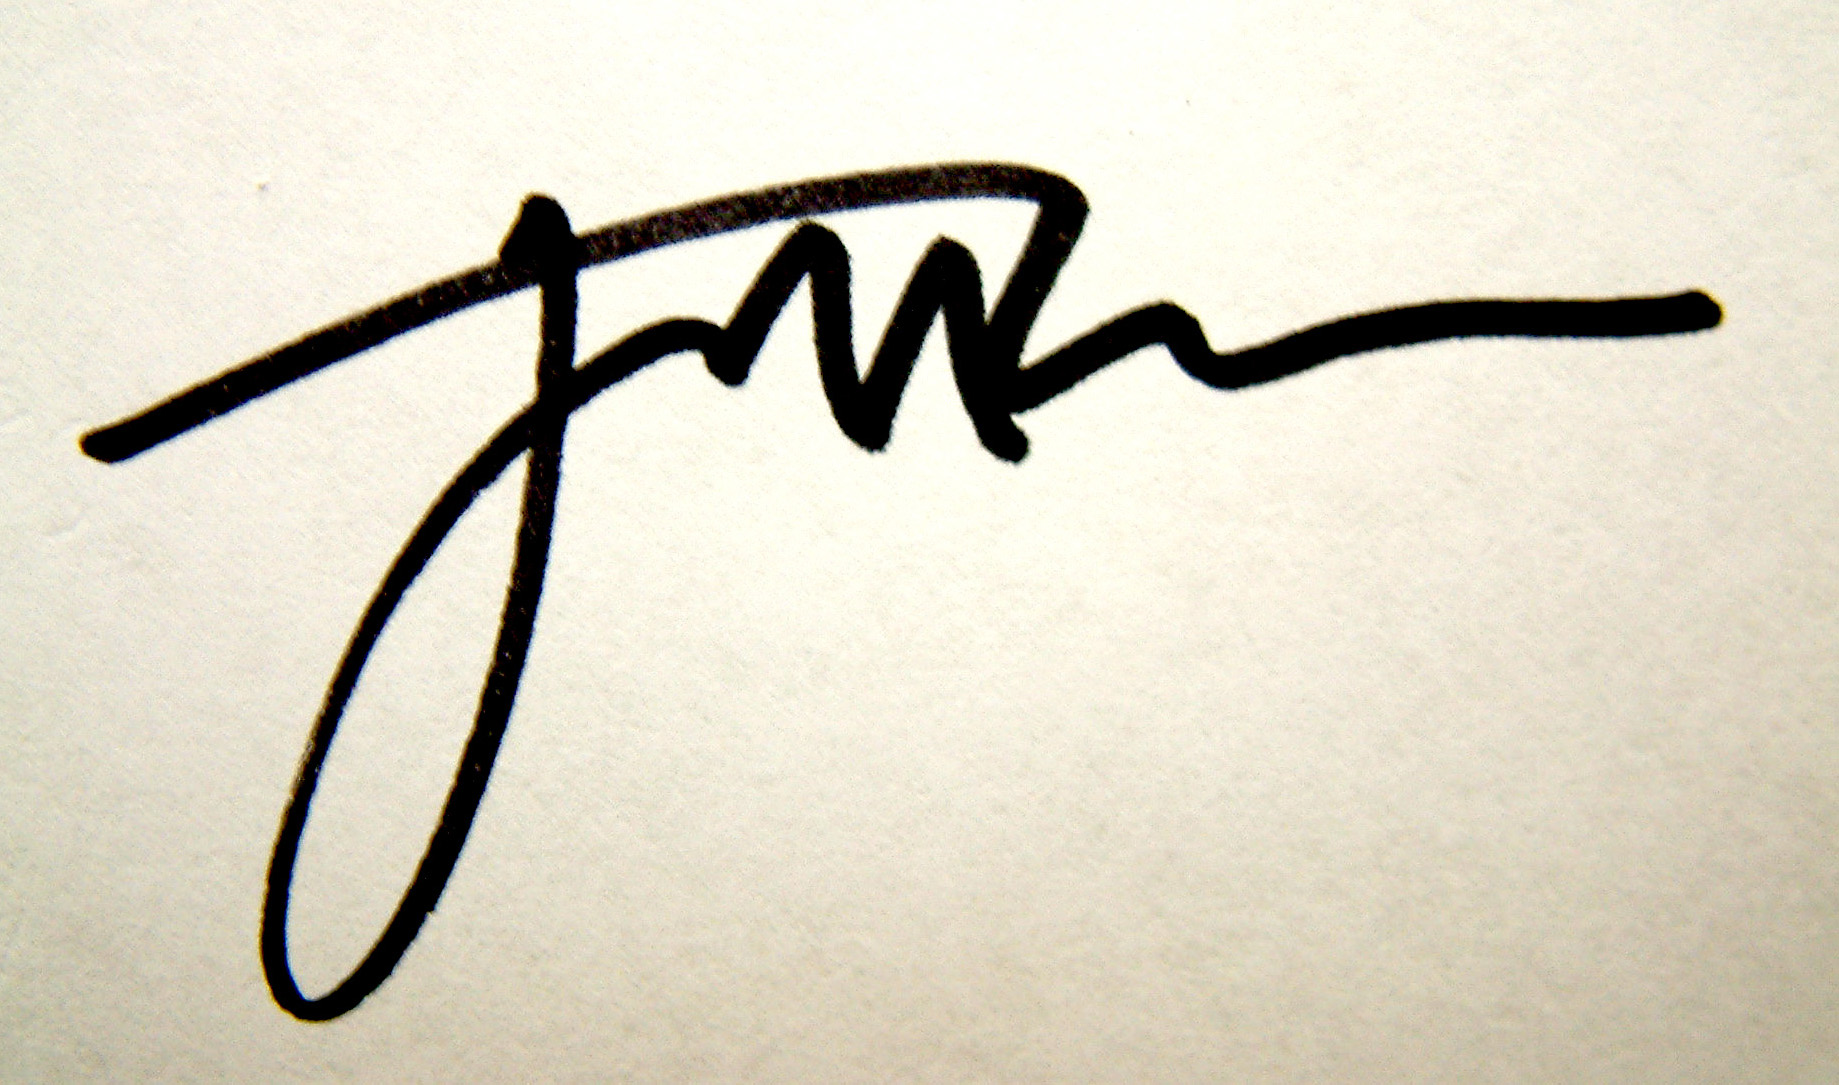 jim Dee's Signature